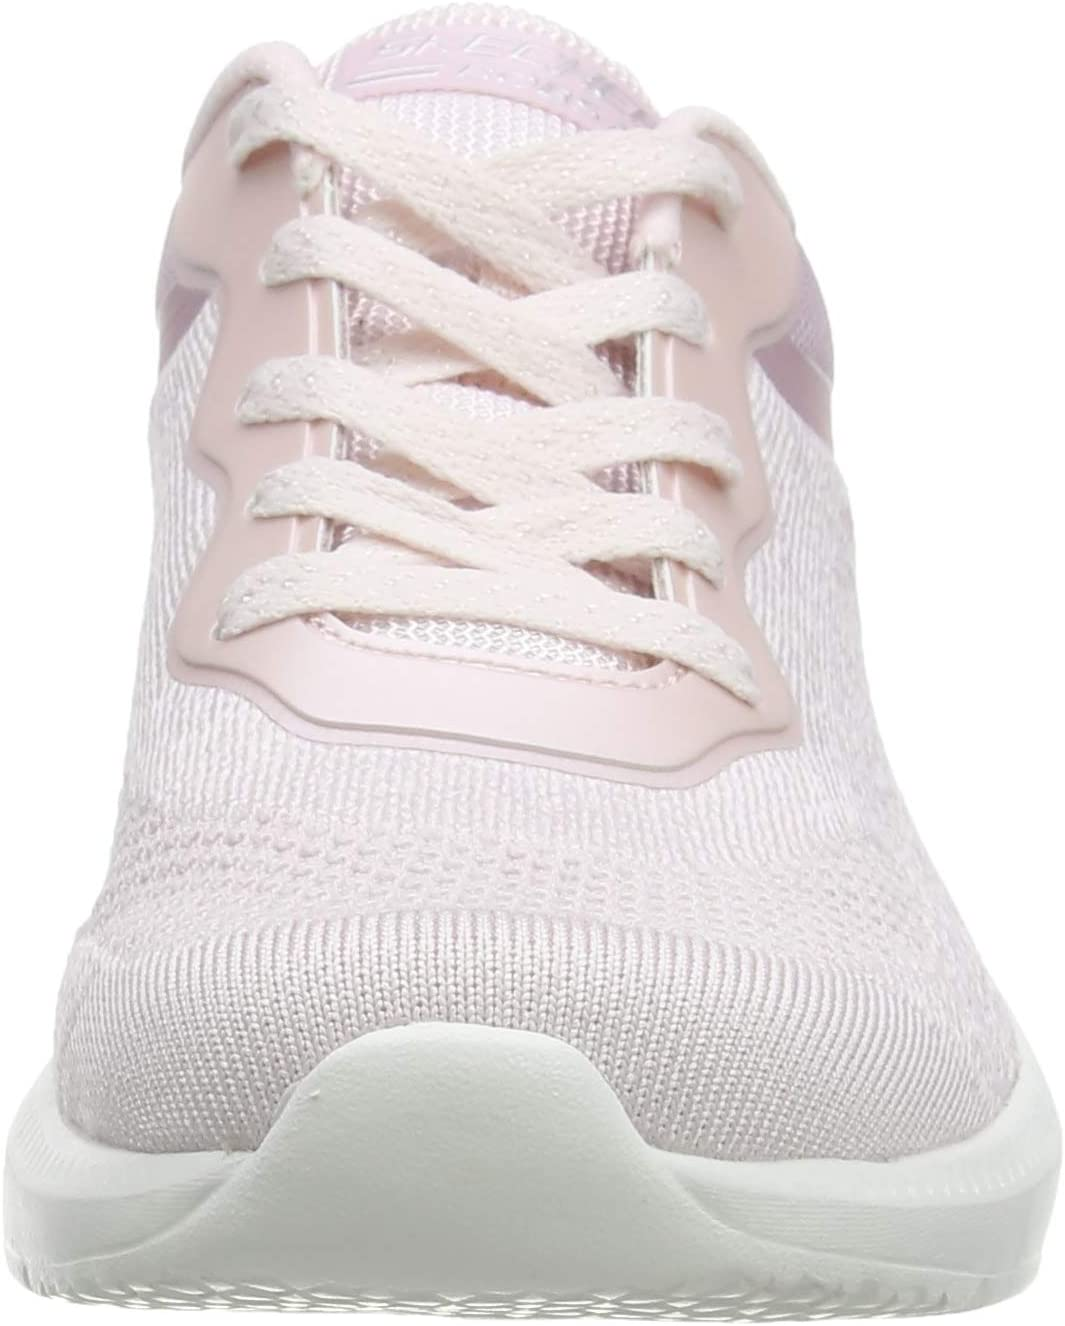 Skechers Ariana Metro Racket Sneakers voor dames Roze Blush Engineered Knit Blush